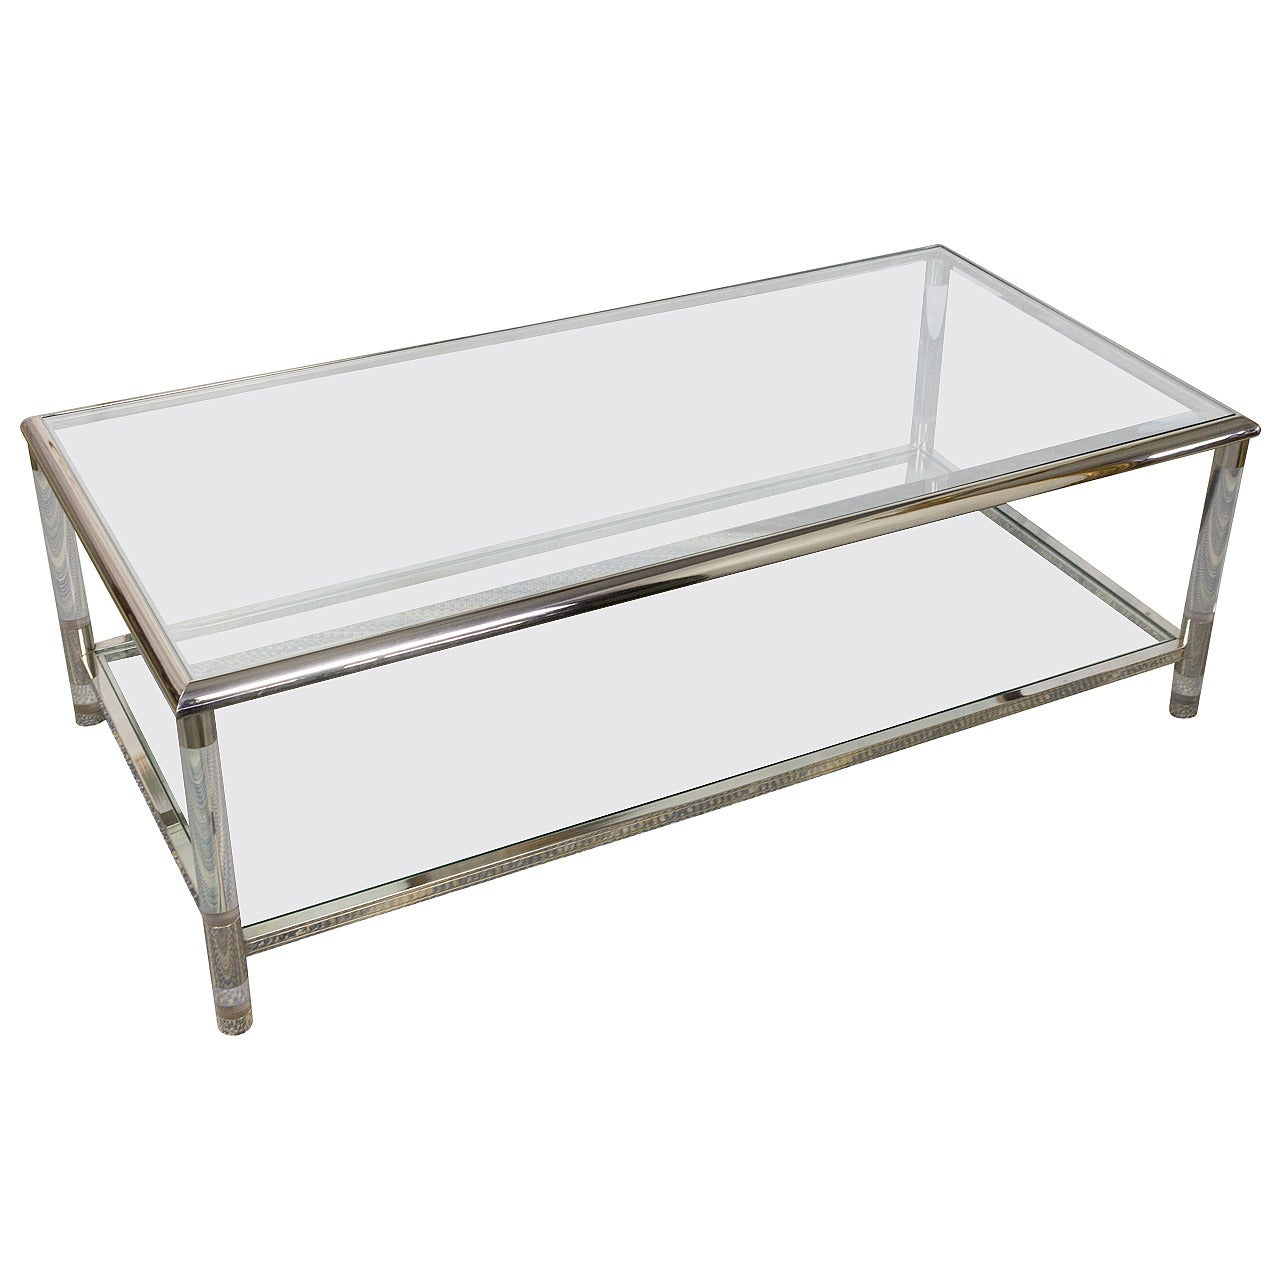 mid century modern rectangular lucite chrome and glass coffee table